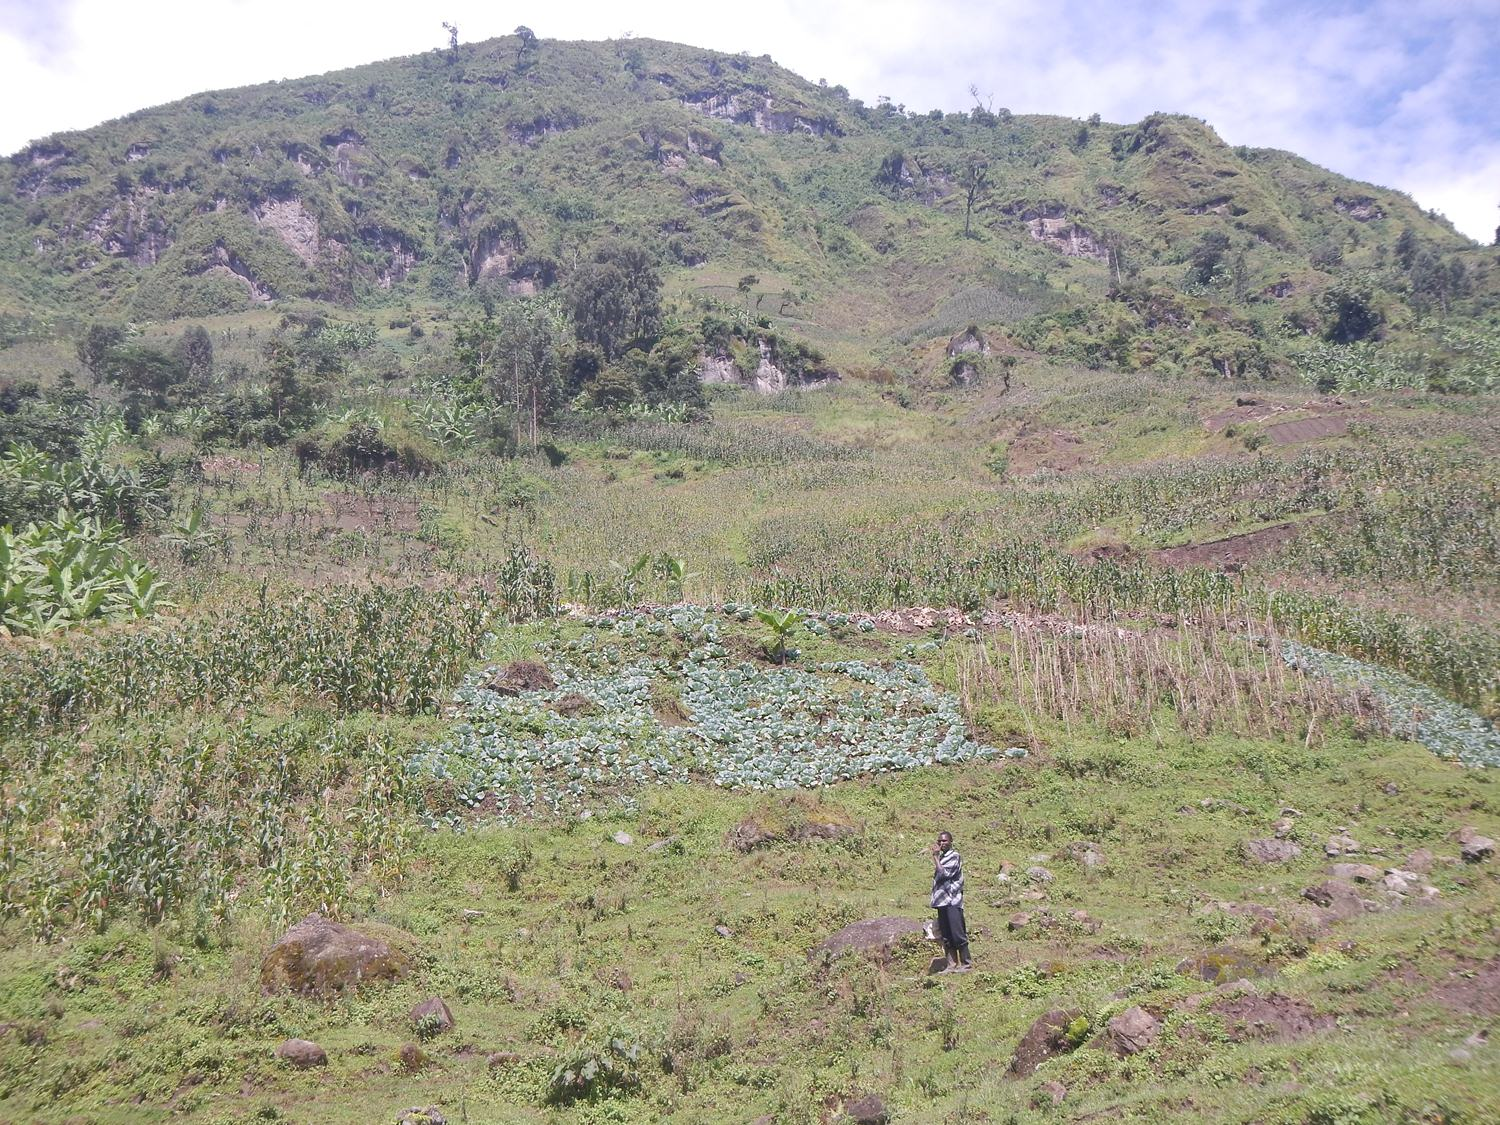 Farming up the ridge in Nametsi, Bududa District, the scene of the 2010 landslide scar that killed over 250 people.